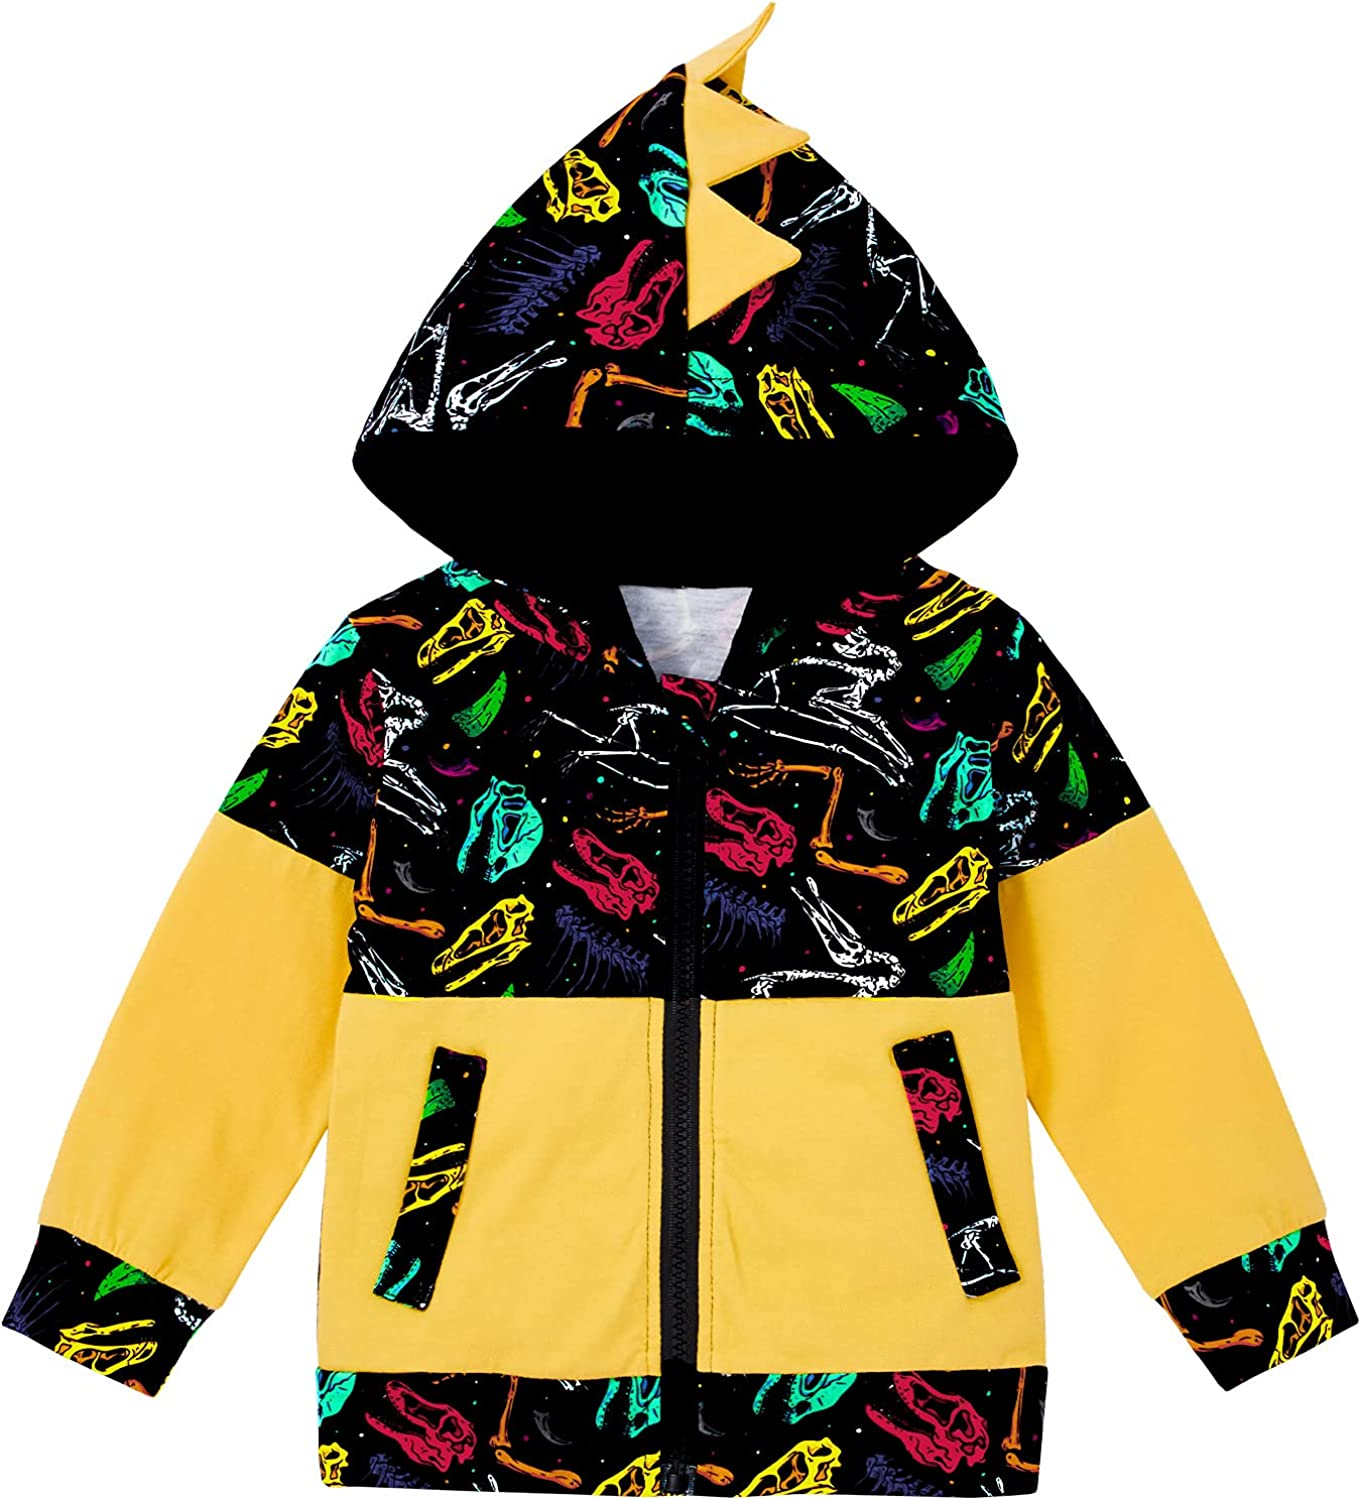 Baby Winter Jacket Toddler Boy Ranking TOP14 Hooded Manufacturer direct delivery Clothes Lo Sweatshirt